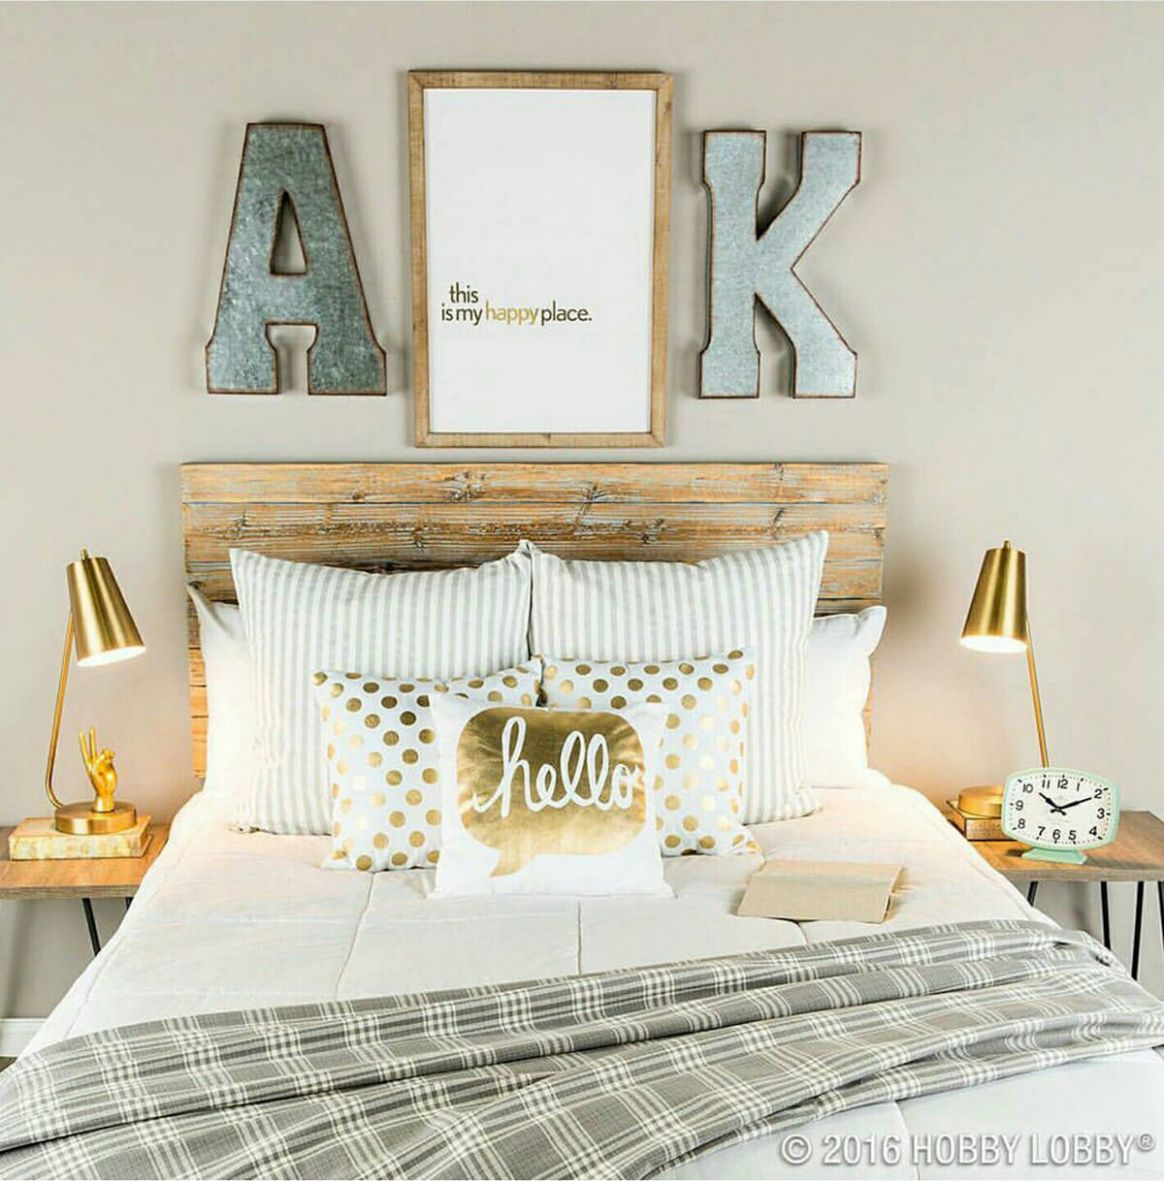 12+ Classy Bedroom Wall Decor Ideas to Style Up Your Space | Rina ..